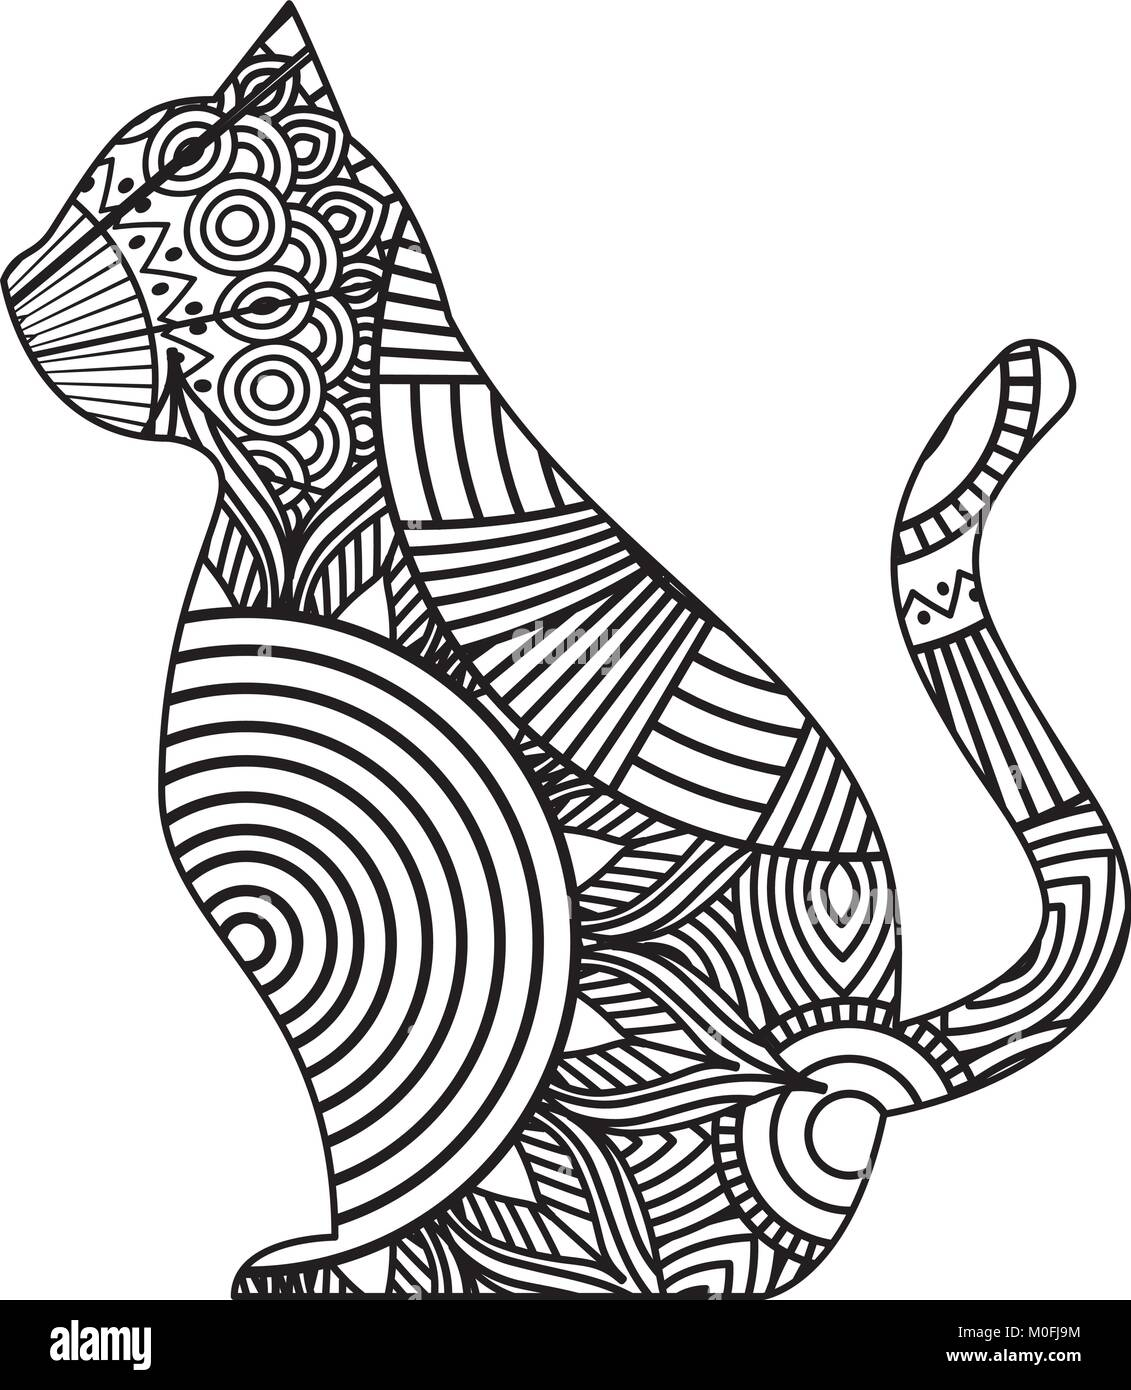 Hand Drawn For Adult Coloring Pages With Cat Sitting Zentangle Monochrome Sketch